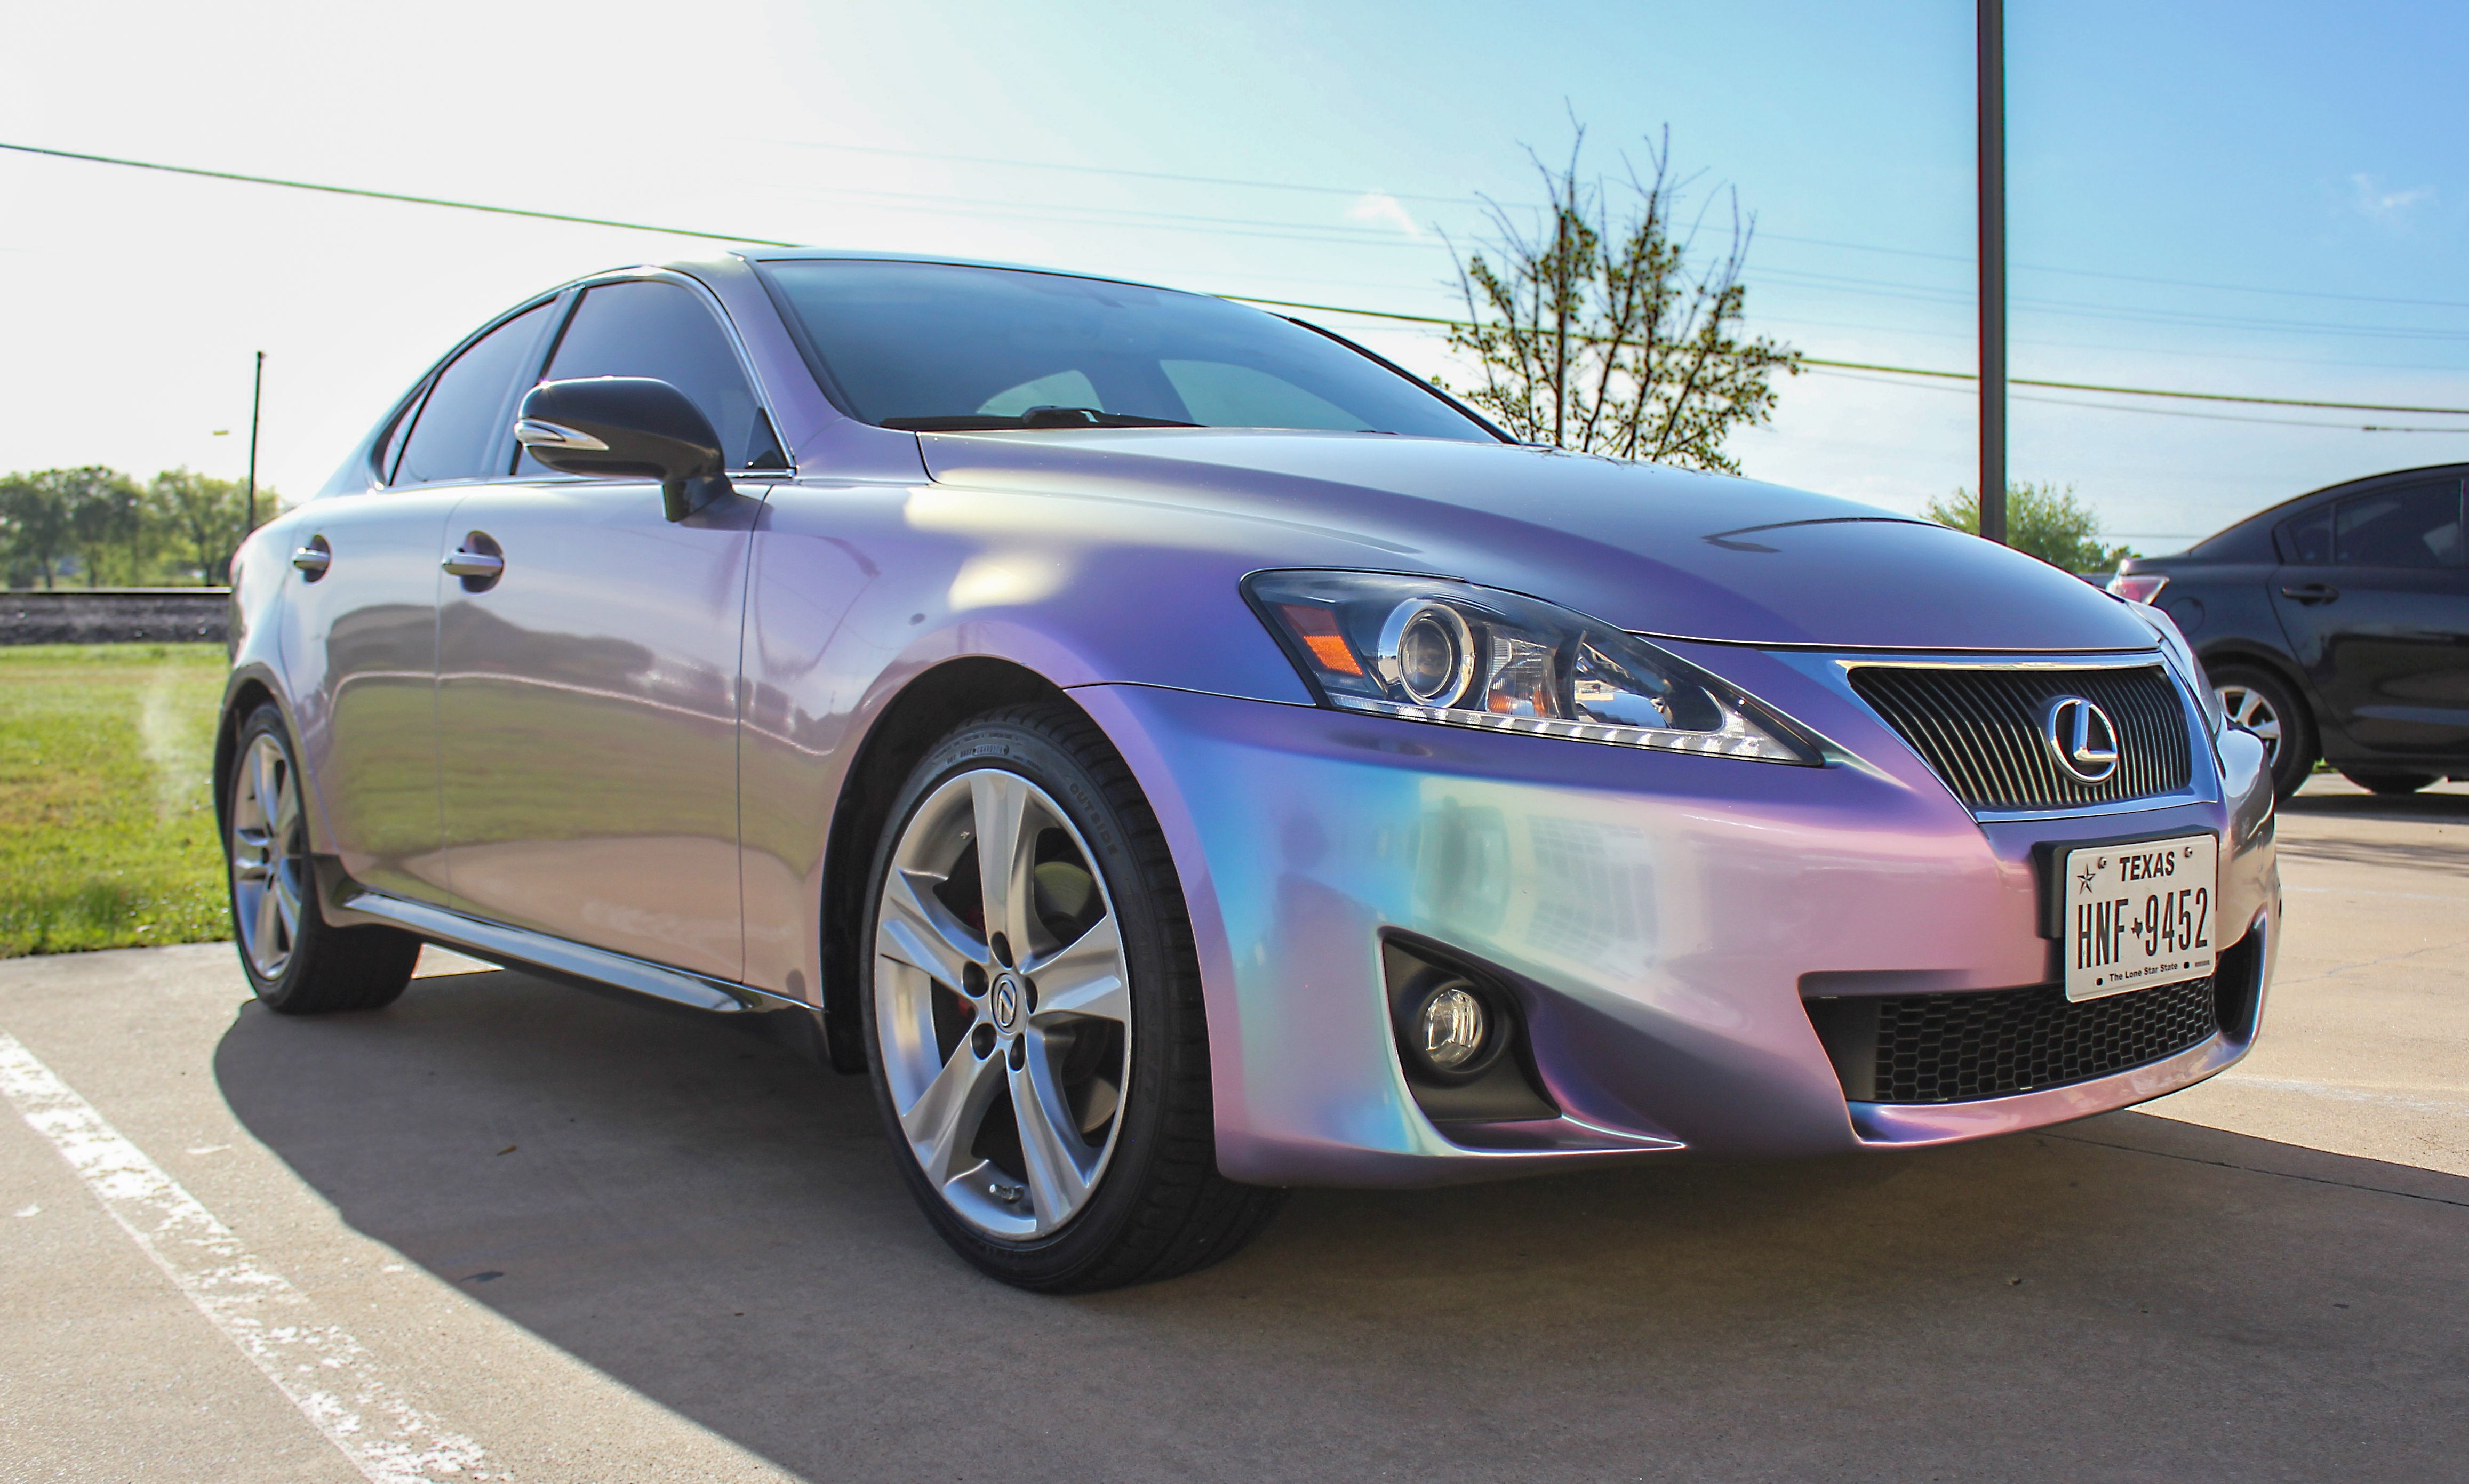 Amethyst Color Shift Lexus Metallic Specialty And Chrome